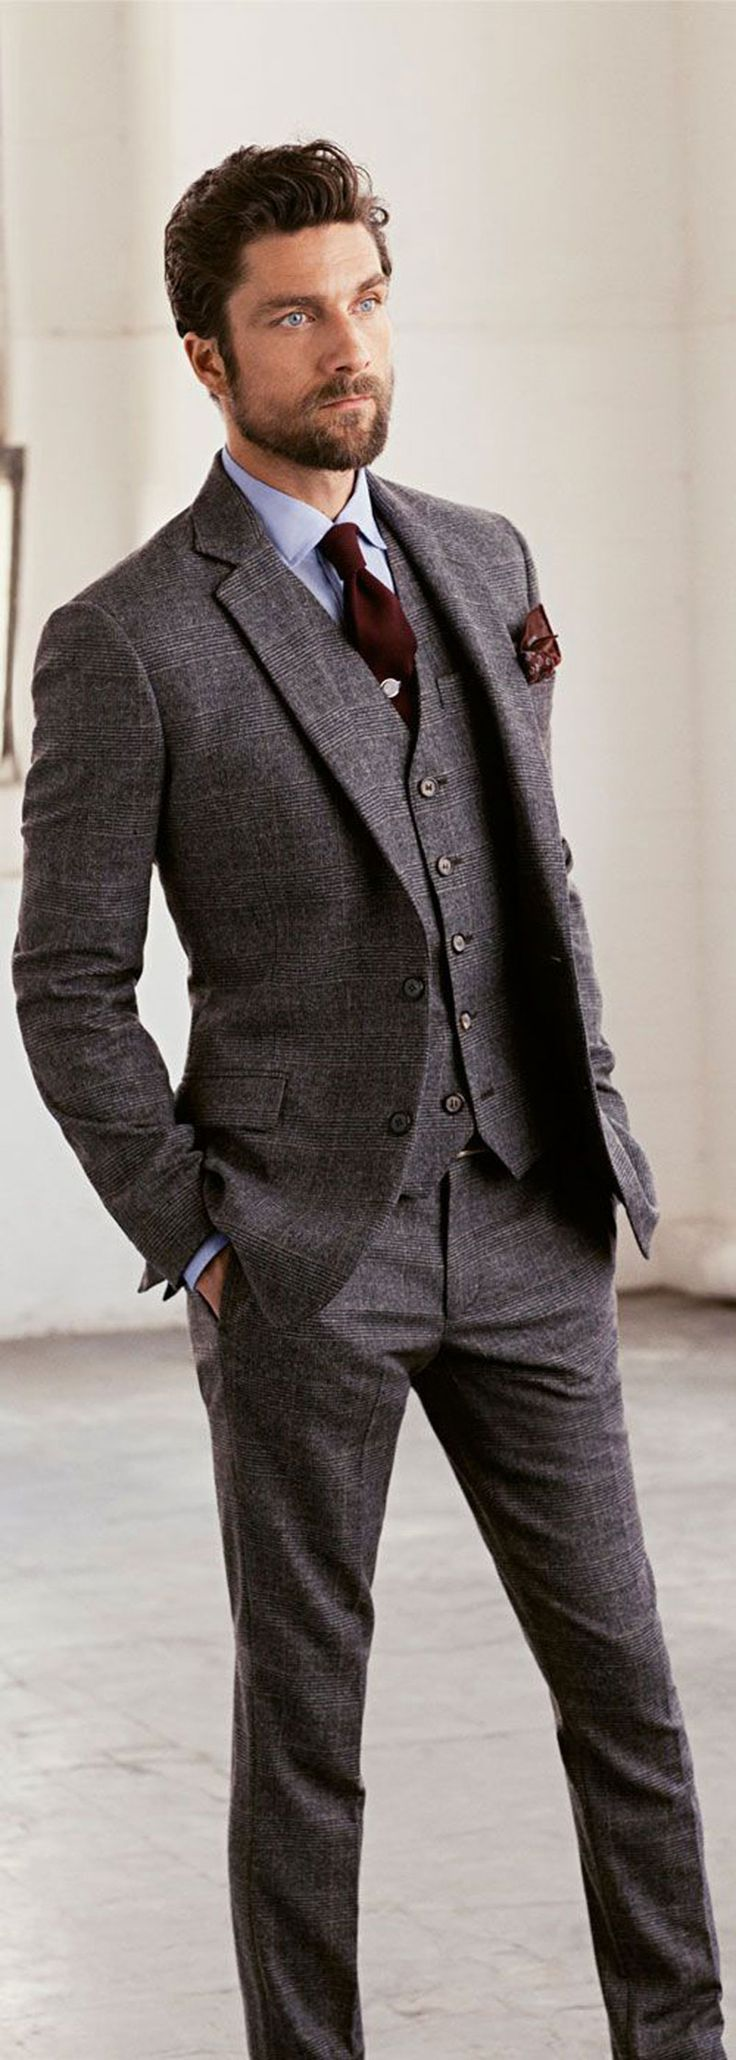 1000  ideas about Grey Wedding Suits on Pinterest | Gray weddings